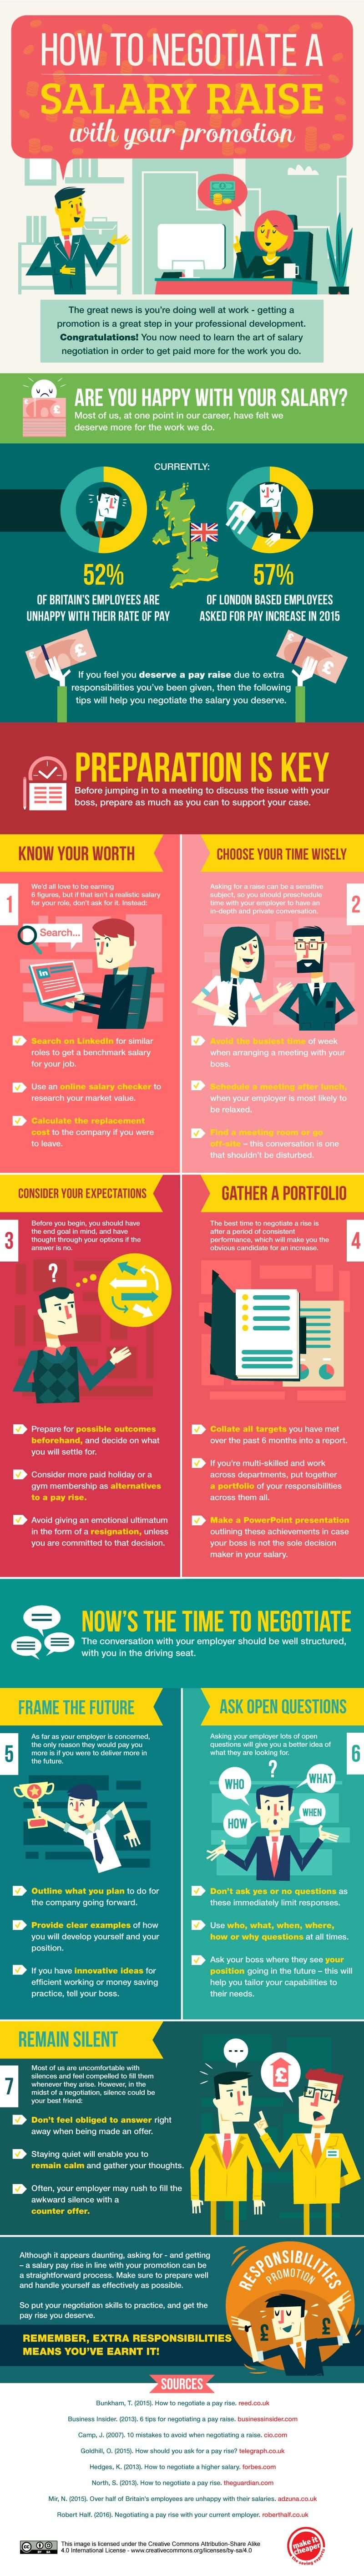 How To Negotiate a Salary Rise With Your Promotion #Infographic